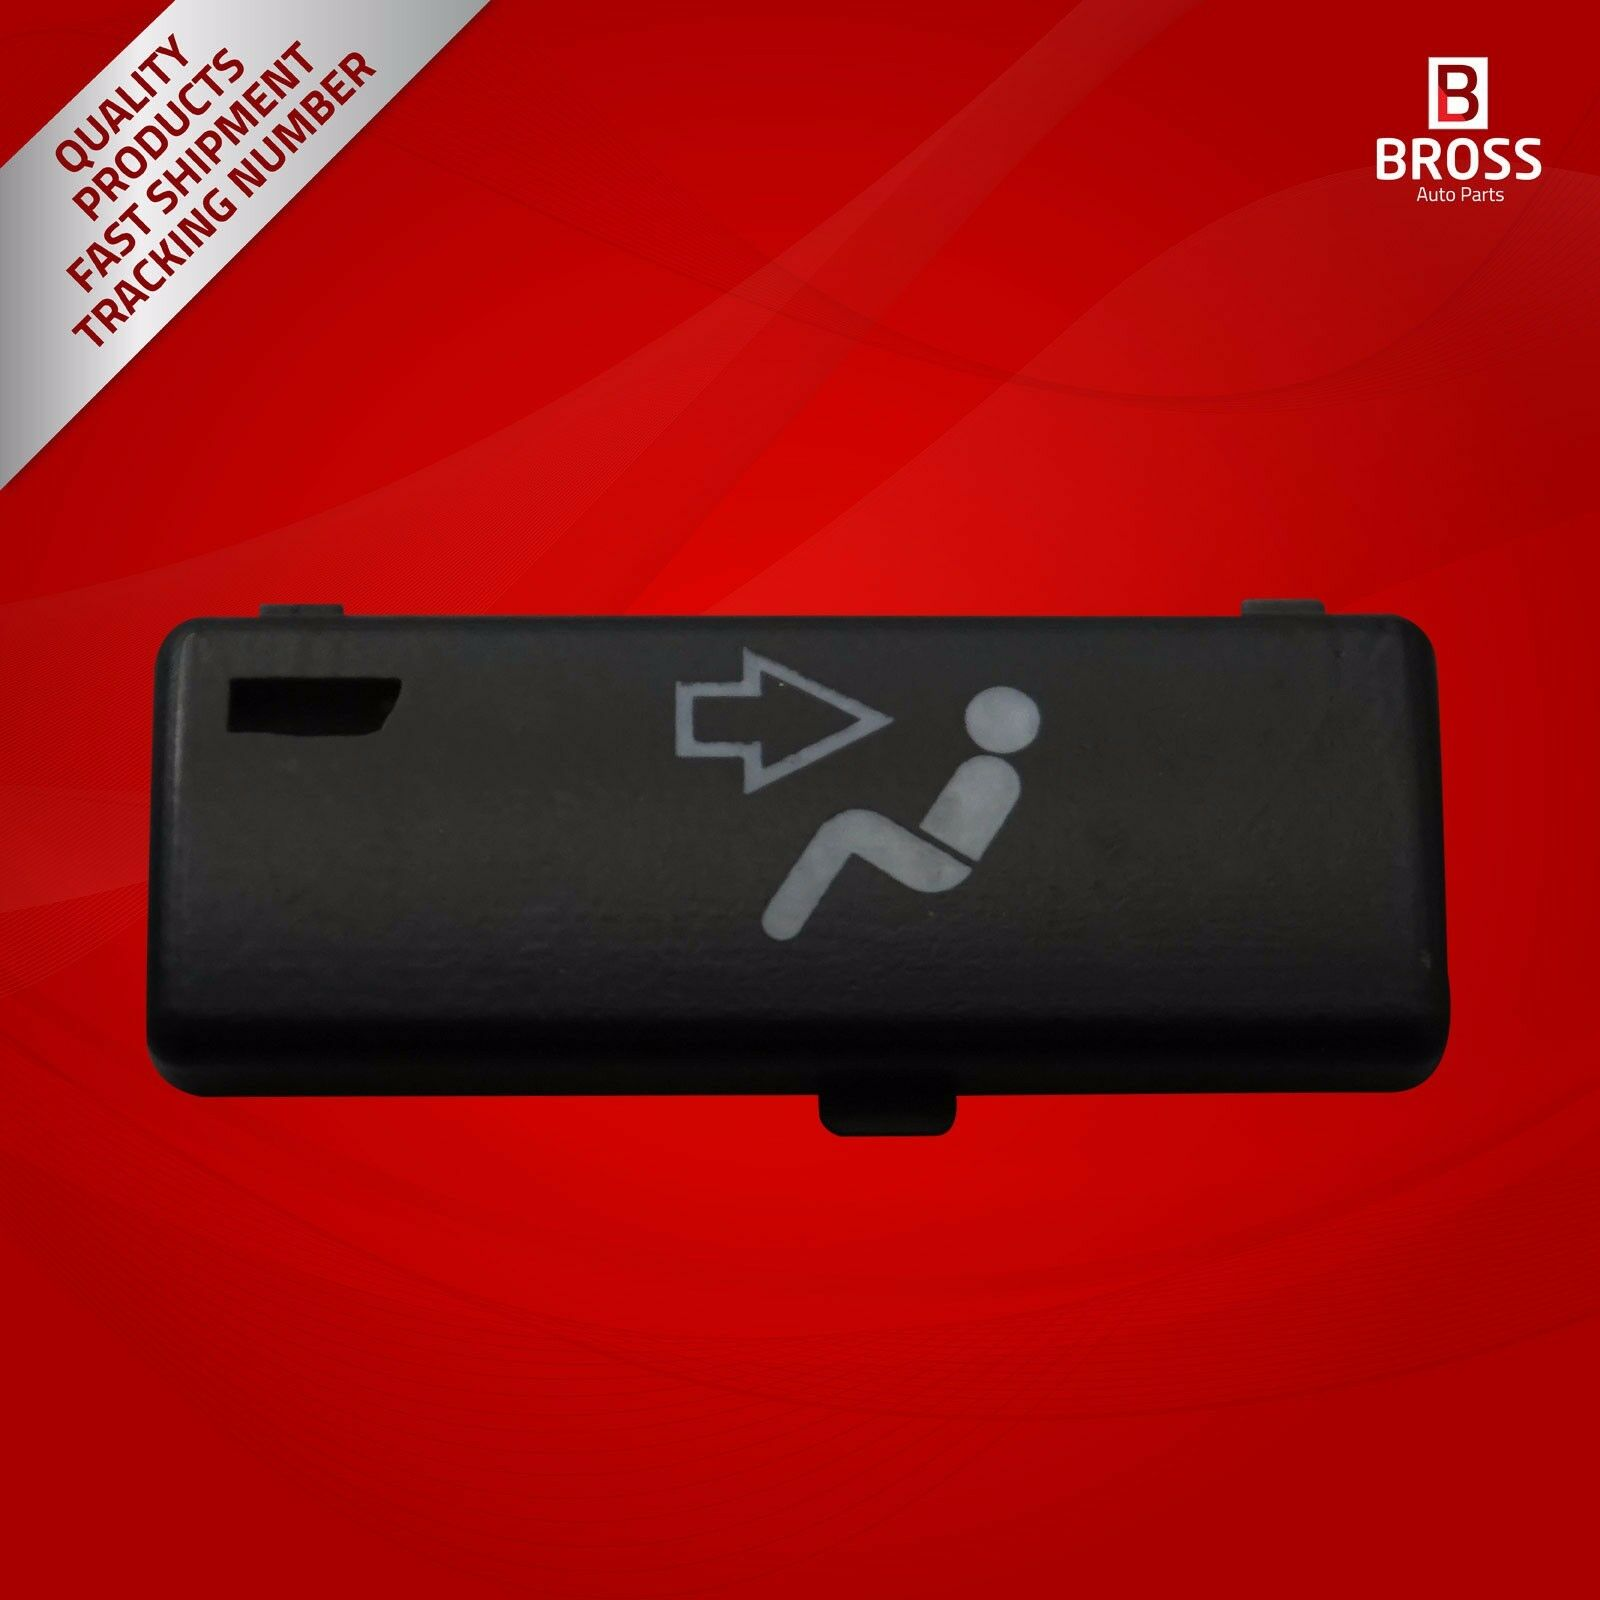 BDP88-2 1 Piece Heater Climate Control Air Conditioning Switch Button Cover #2 For 5 Series X5 E53 2000- 2007 E39 1995-2003